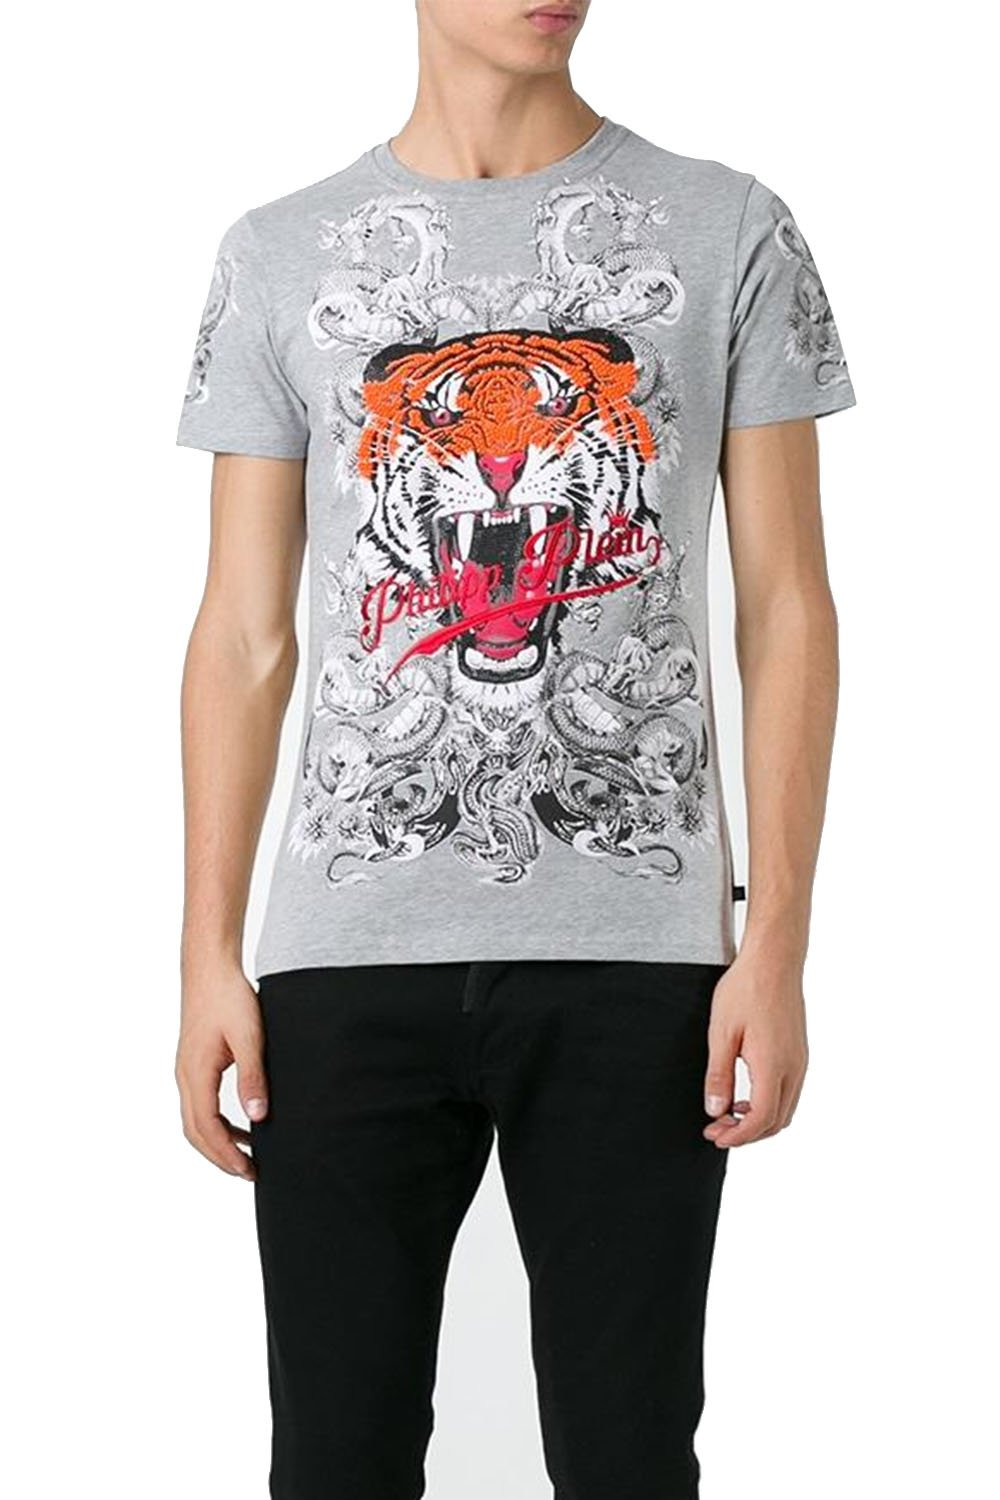 PHILIPP PLEIN - Men's T-shirt PHILIPP TIGER - gray, M